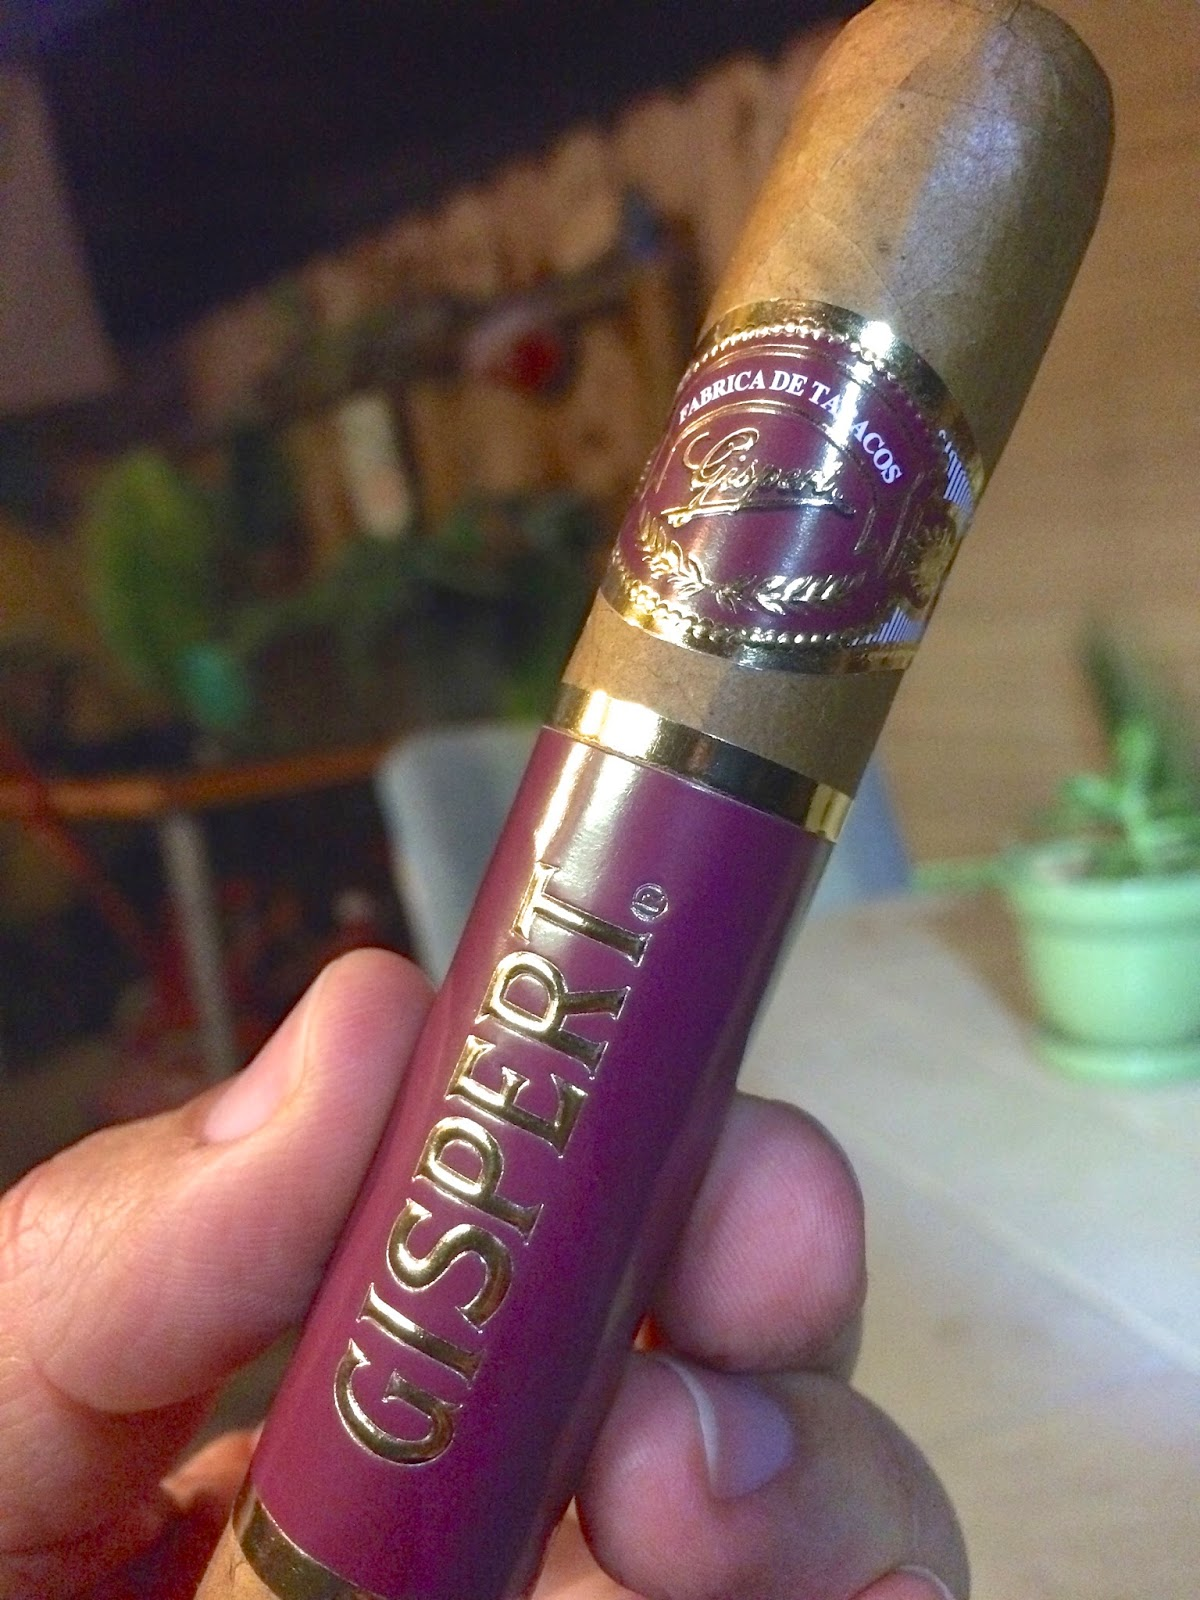 Gispert Connecticut Robusto 1